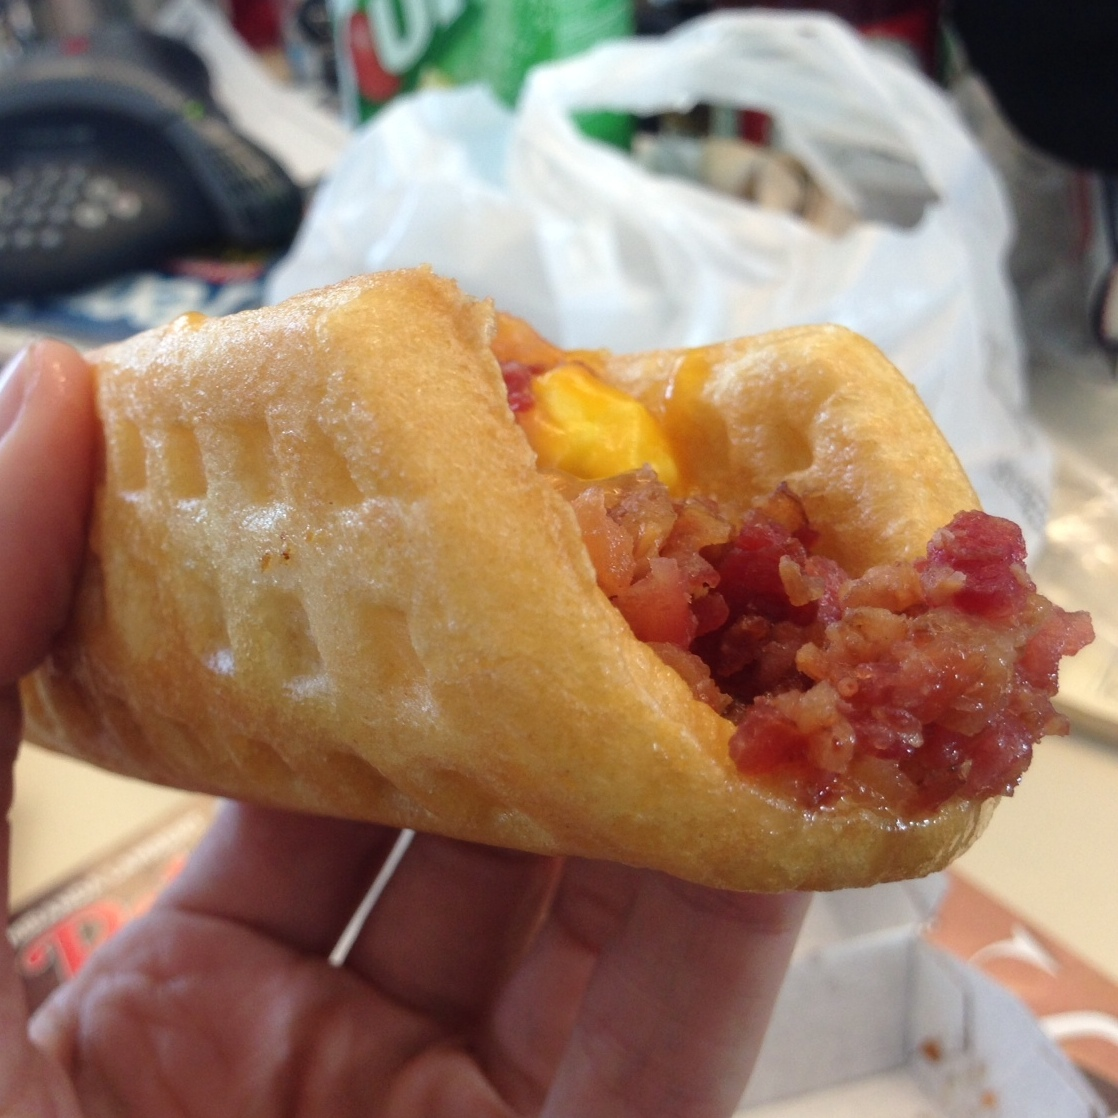 Nine out of 10 customers prefer the Waffle Taco to the Offal Taco.